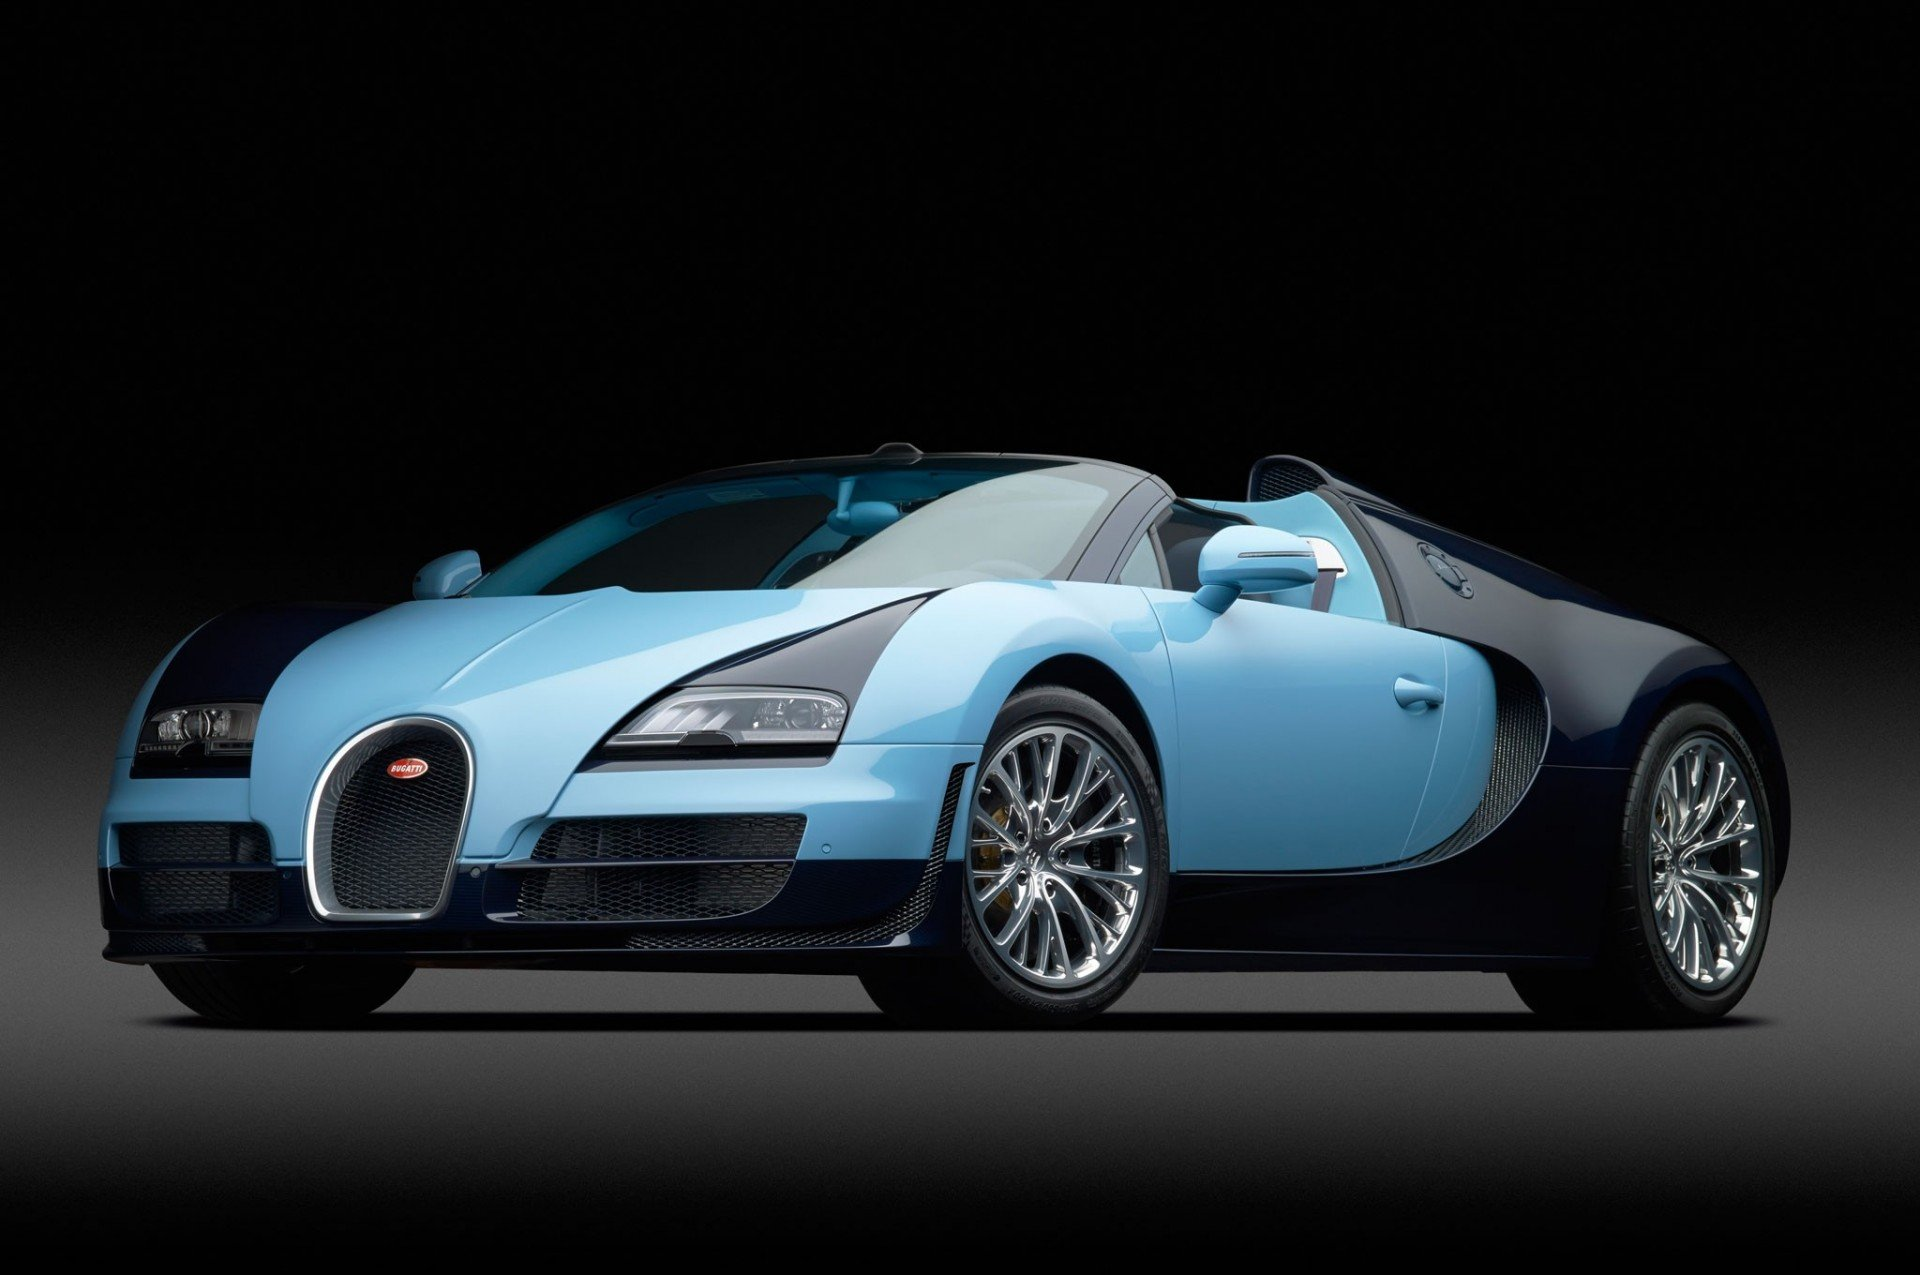 blue black sports car checkout HD wallpaper